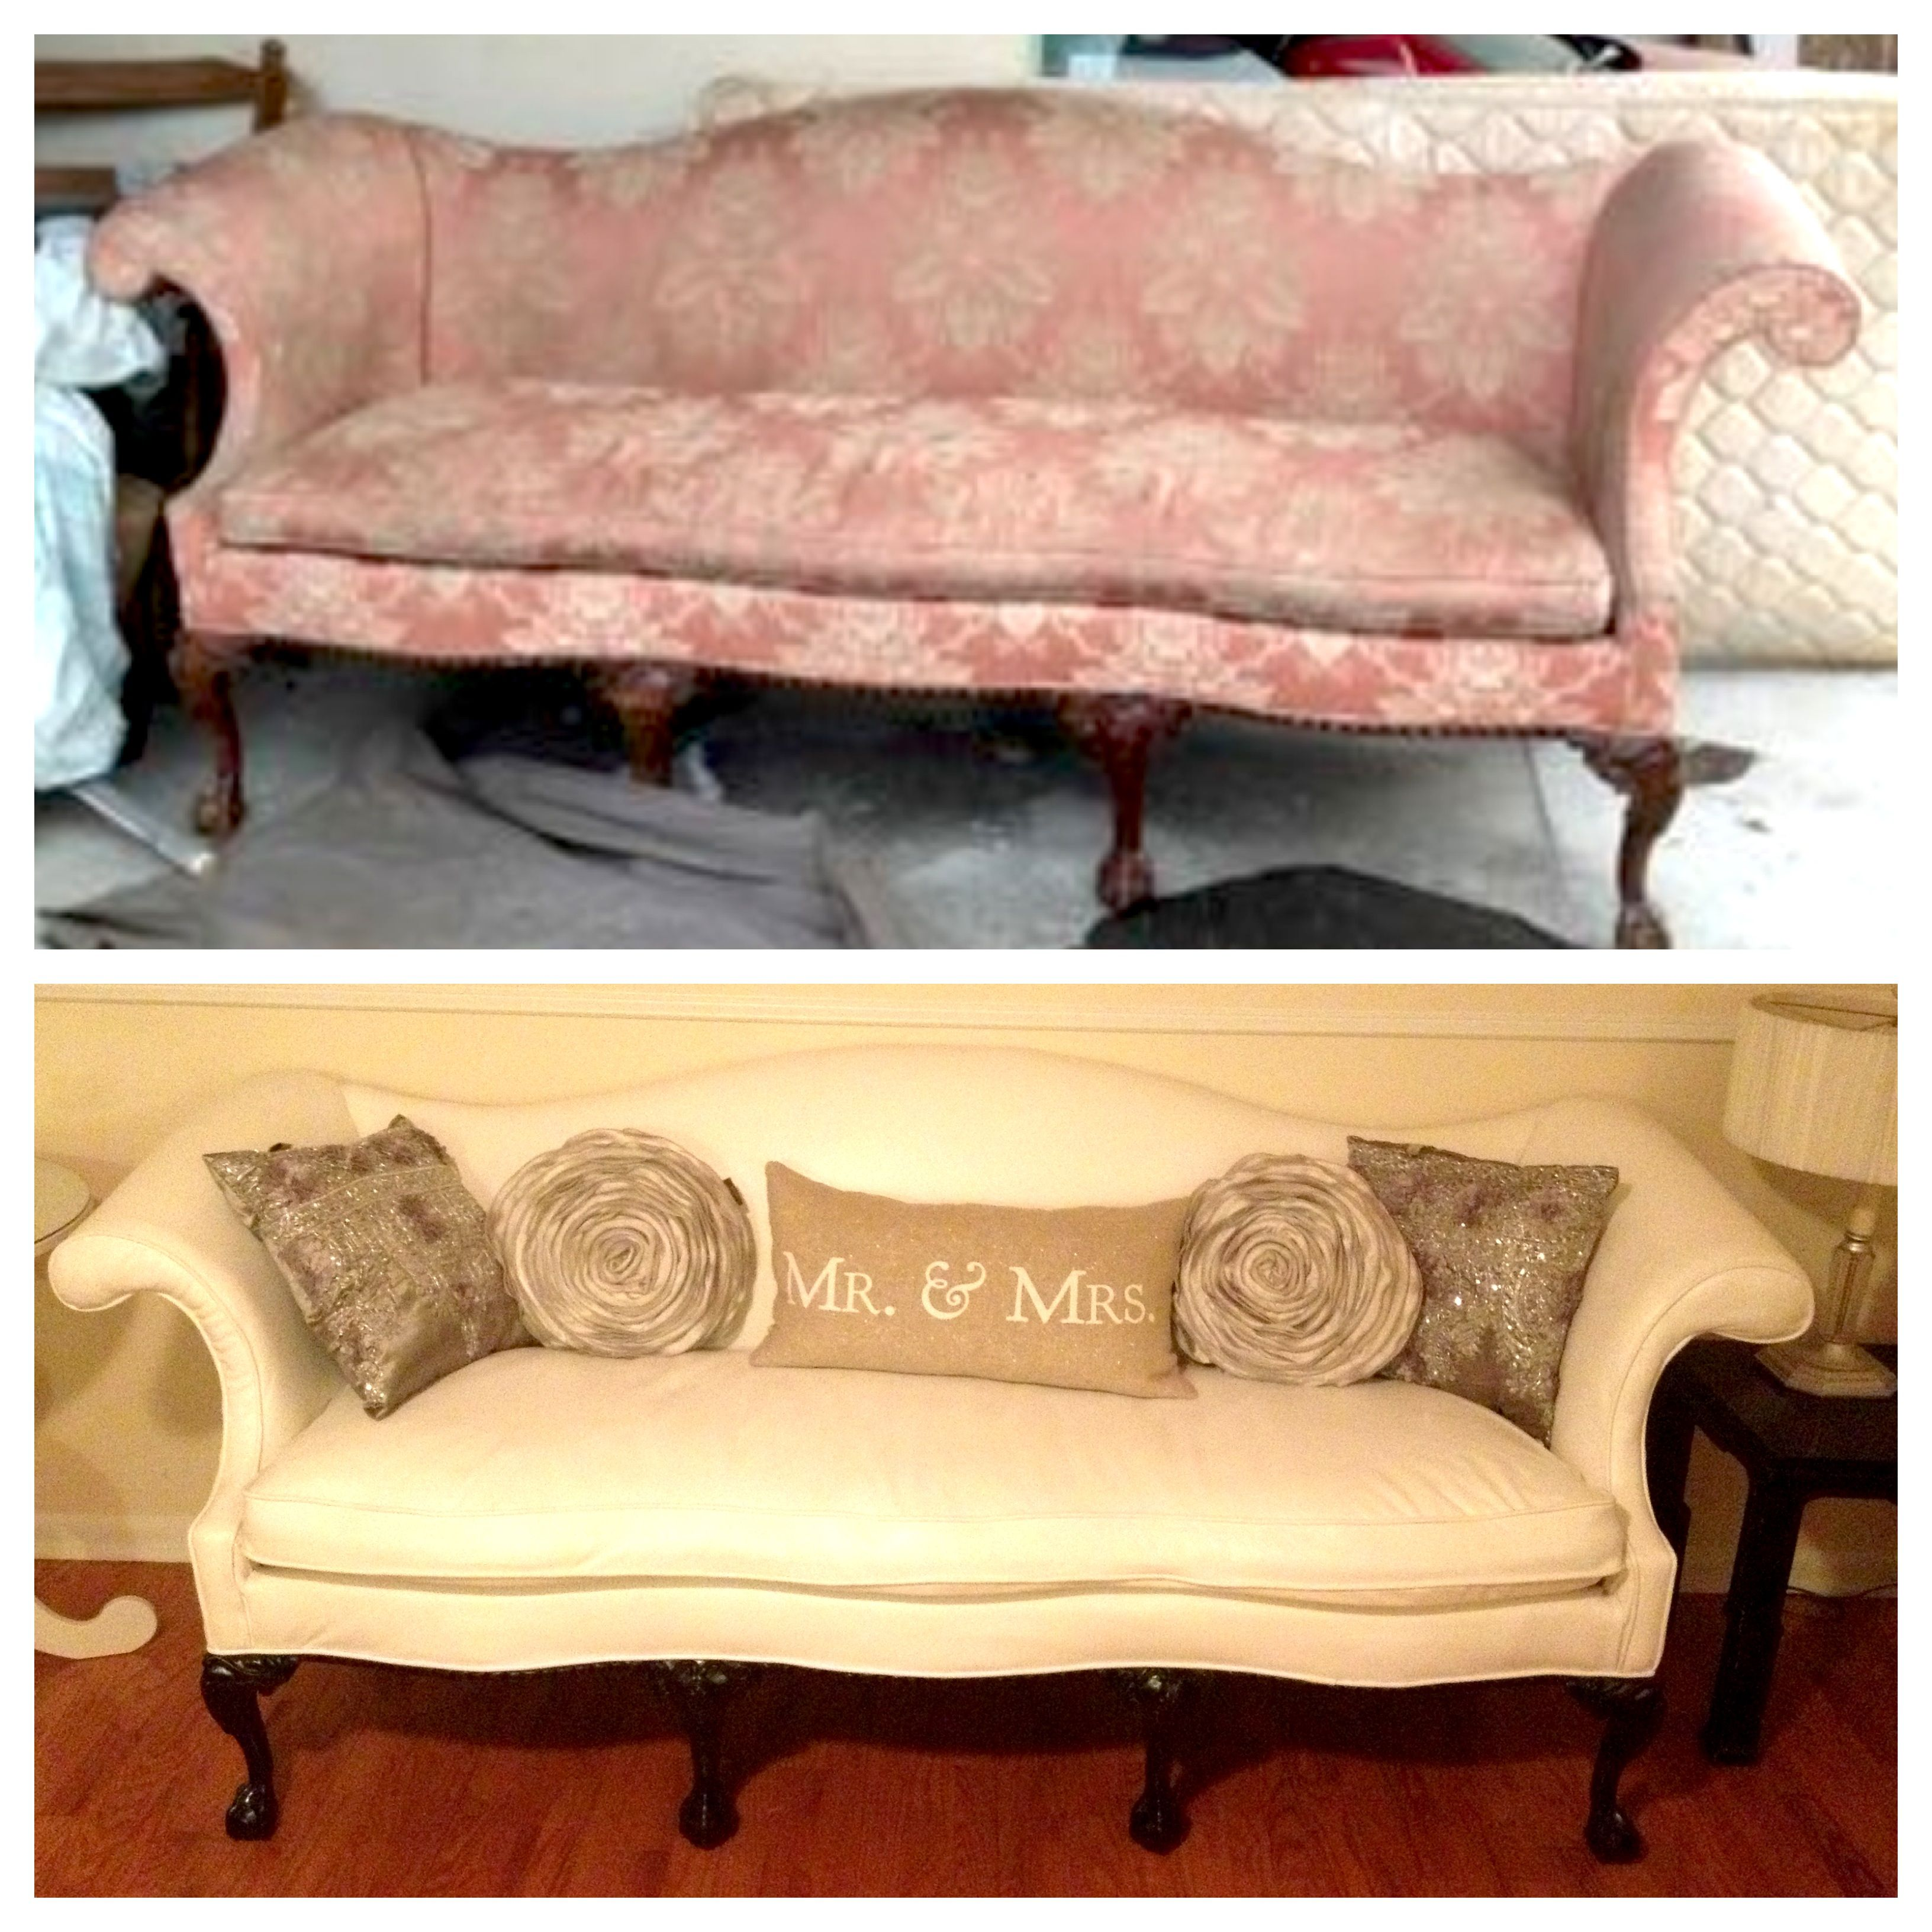 Vintage Couch Vintage Couch Before And After Furniture Reupholster For The